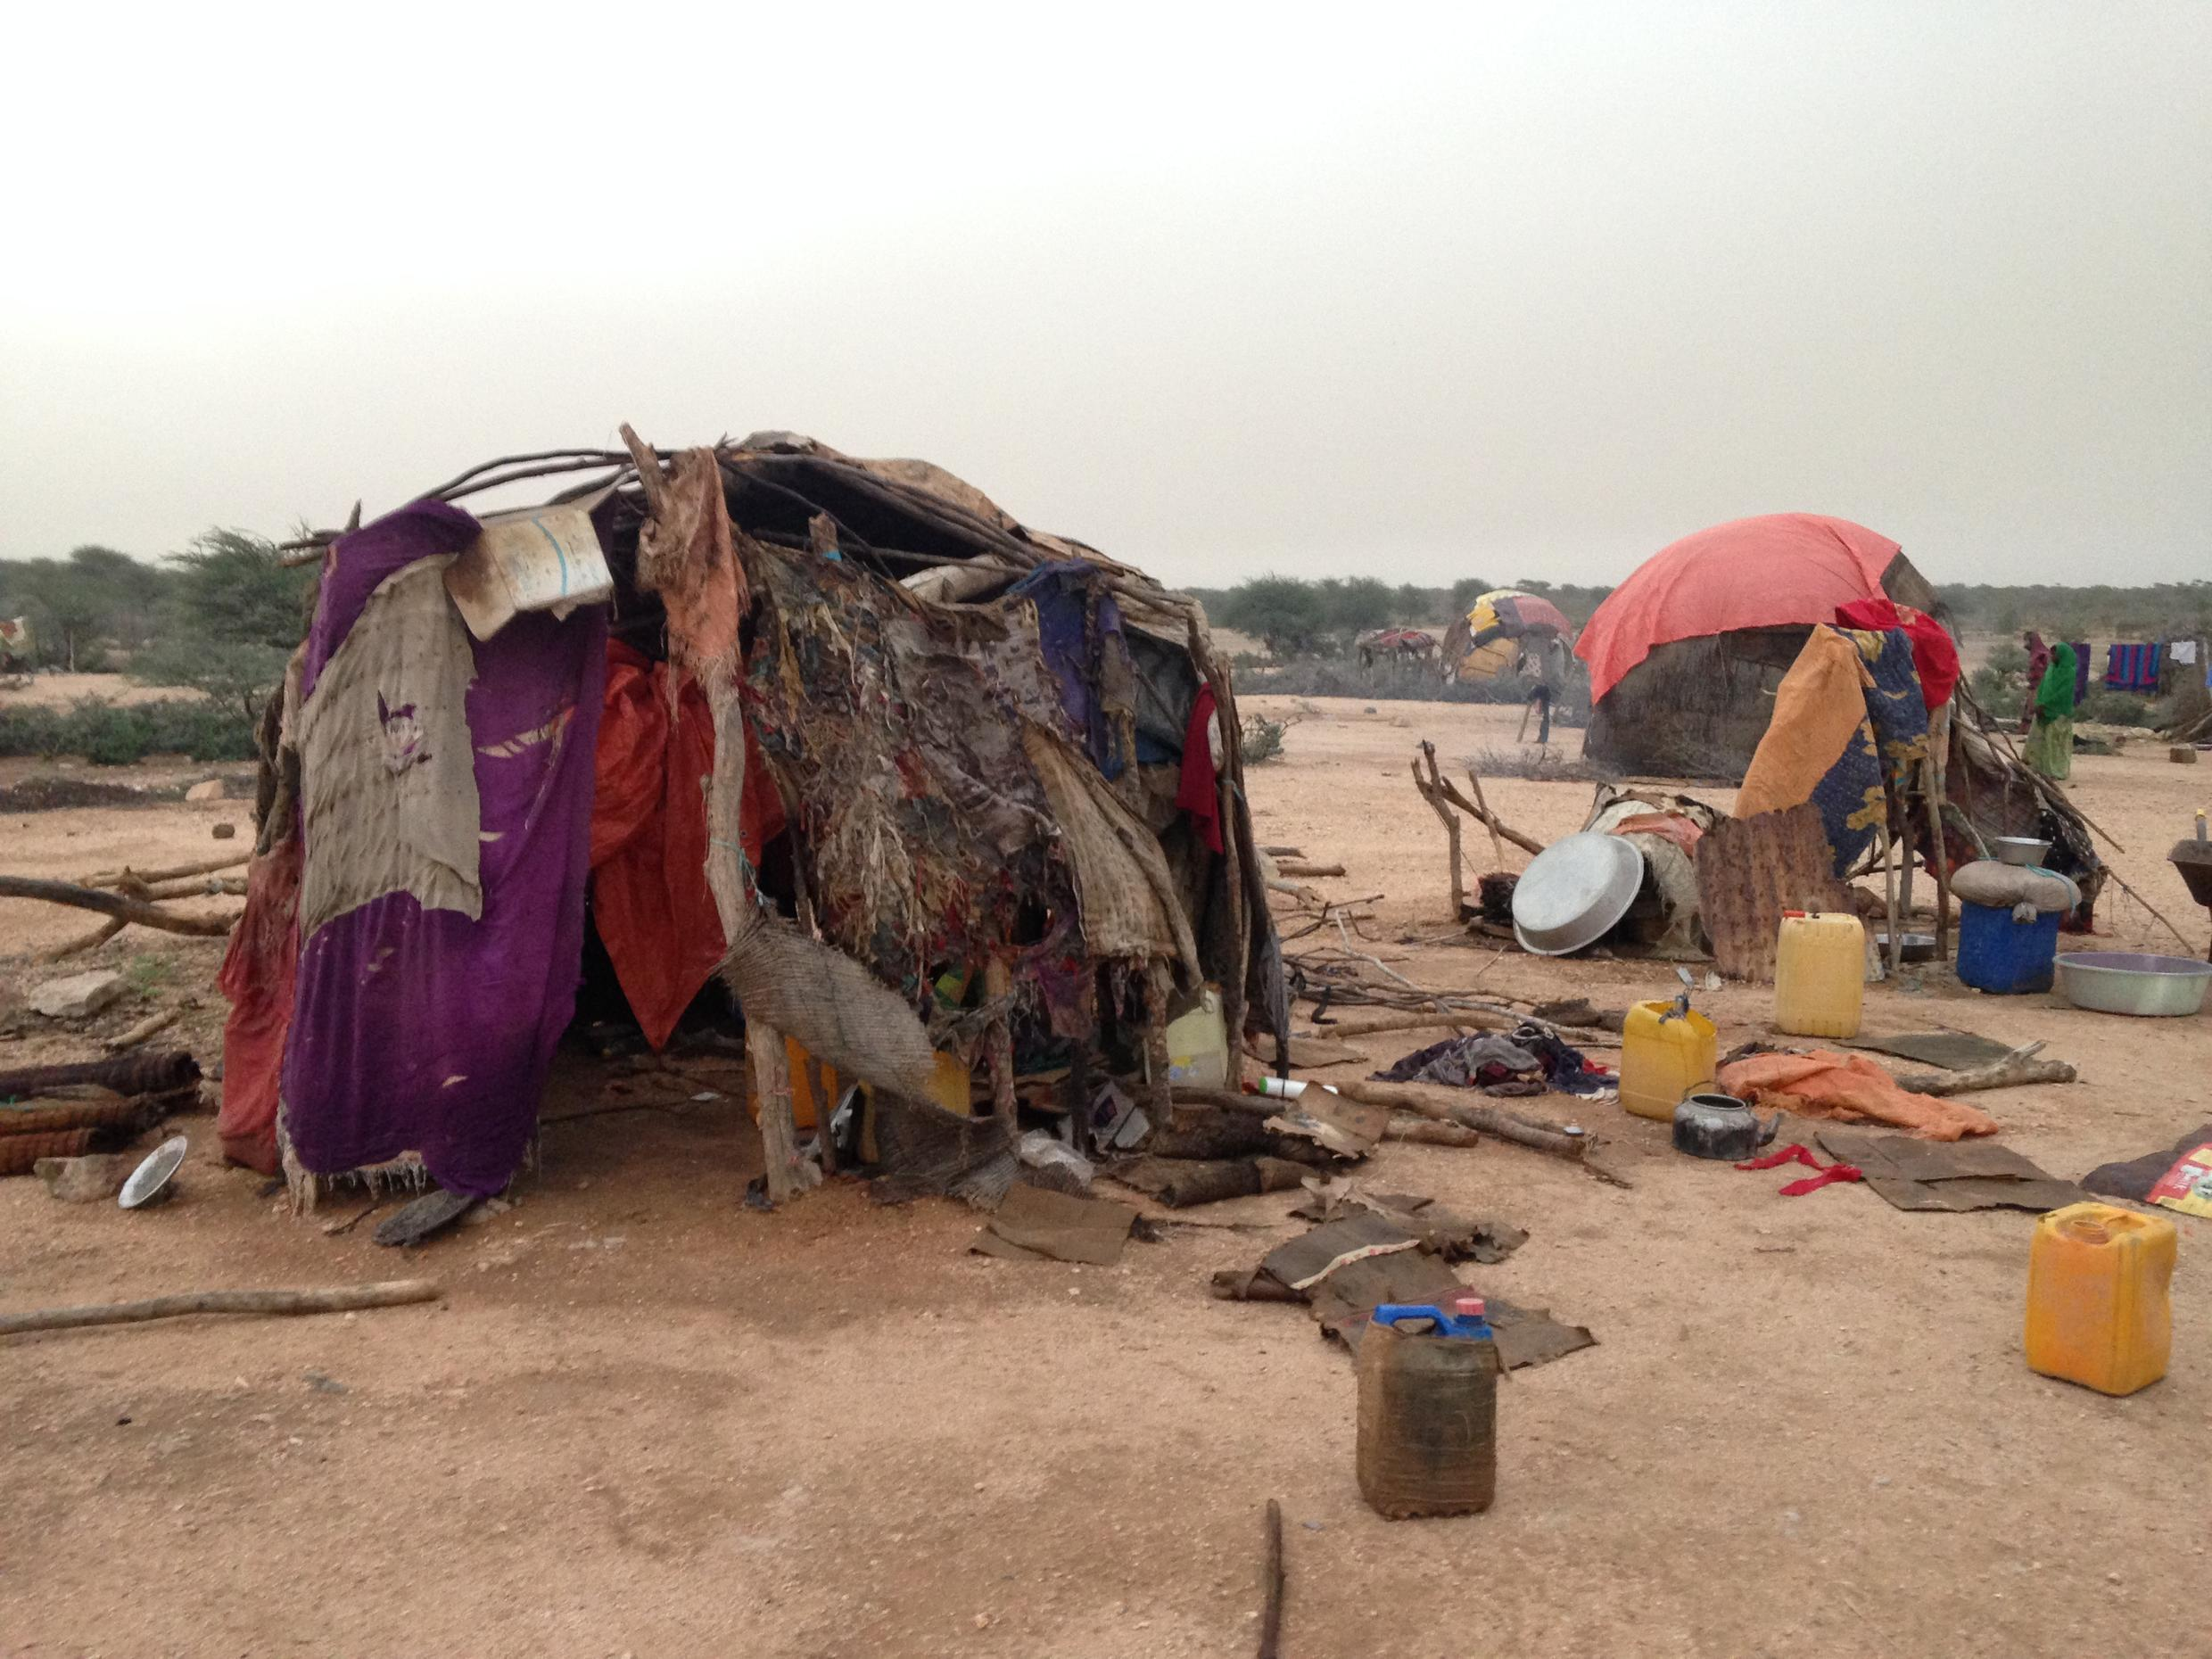 Huts of Internally Displaced People in Gargara, Somaliland